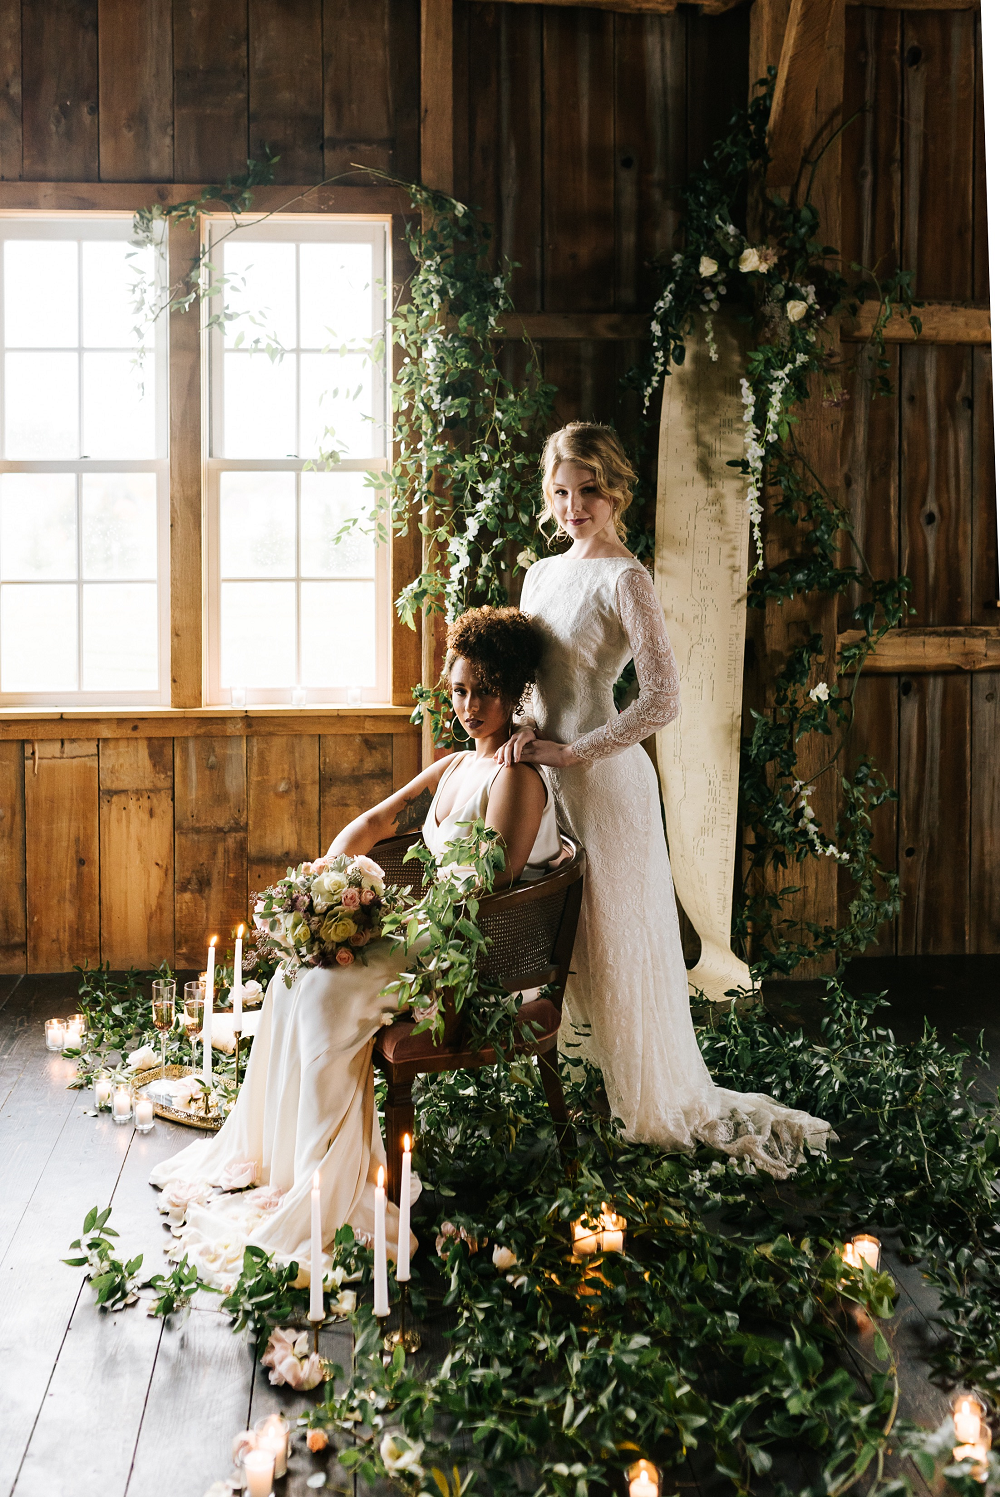 Lush Greenery Wedding Inspired Styled Shoot at Cornman Farms Brides among Vines